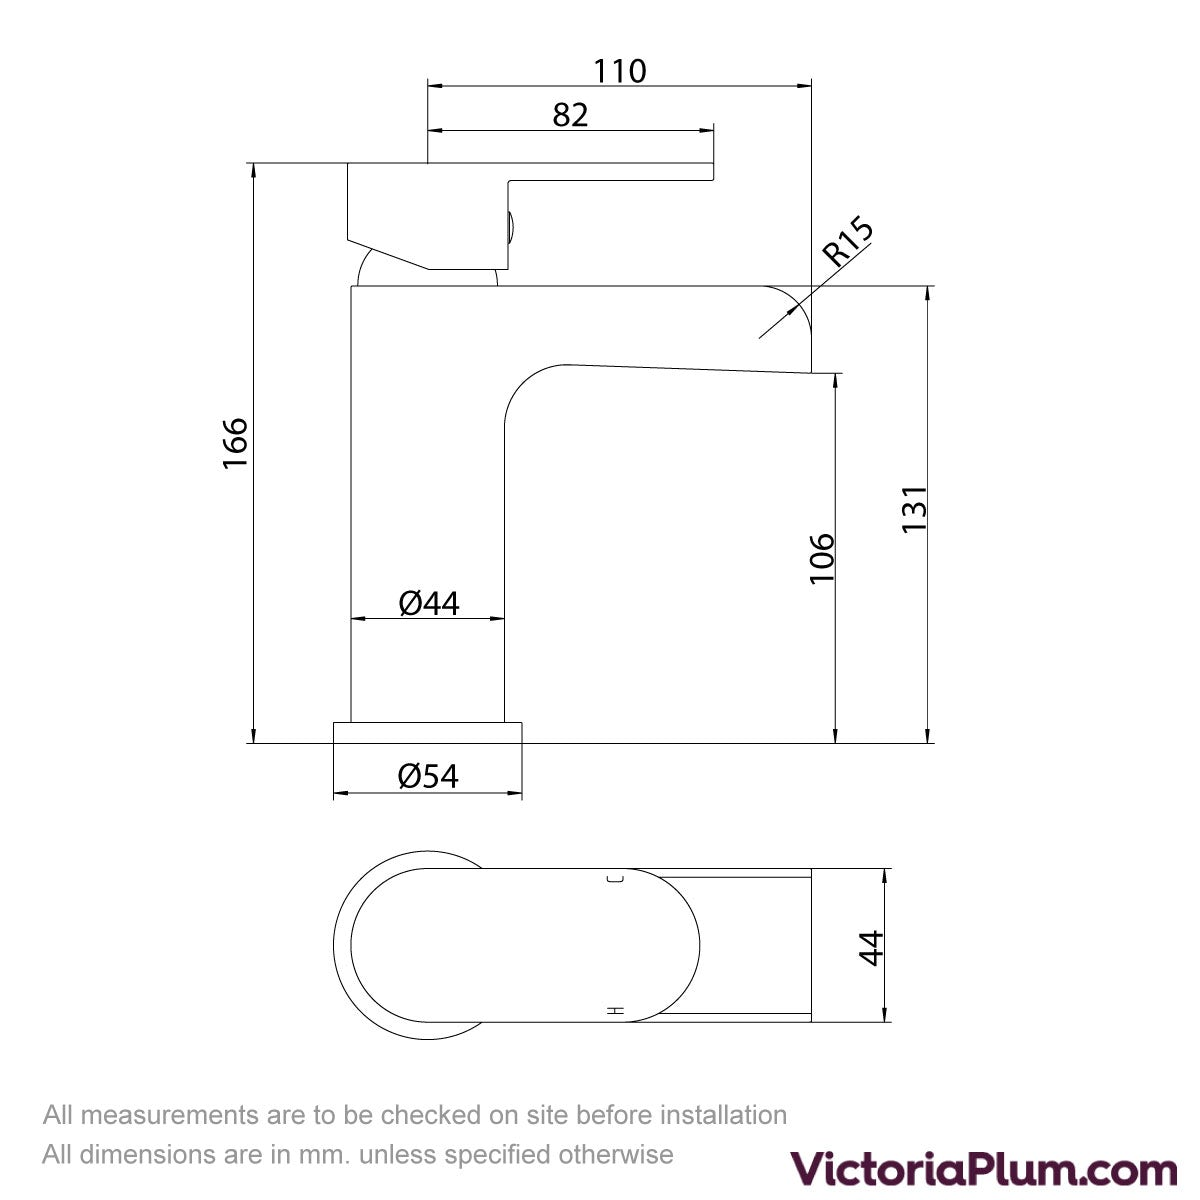 Dimensions for Orchard Eden waterfall basin mixer tap